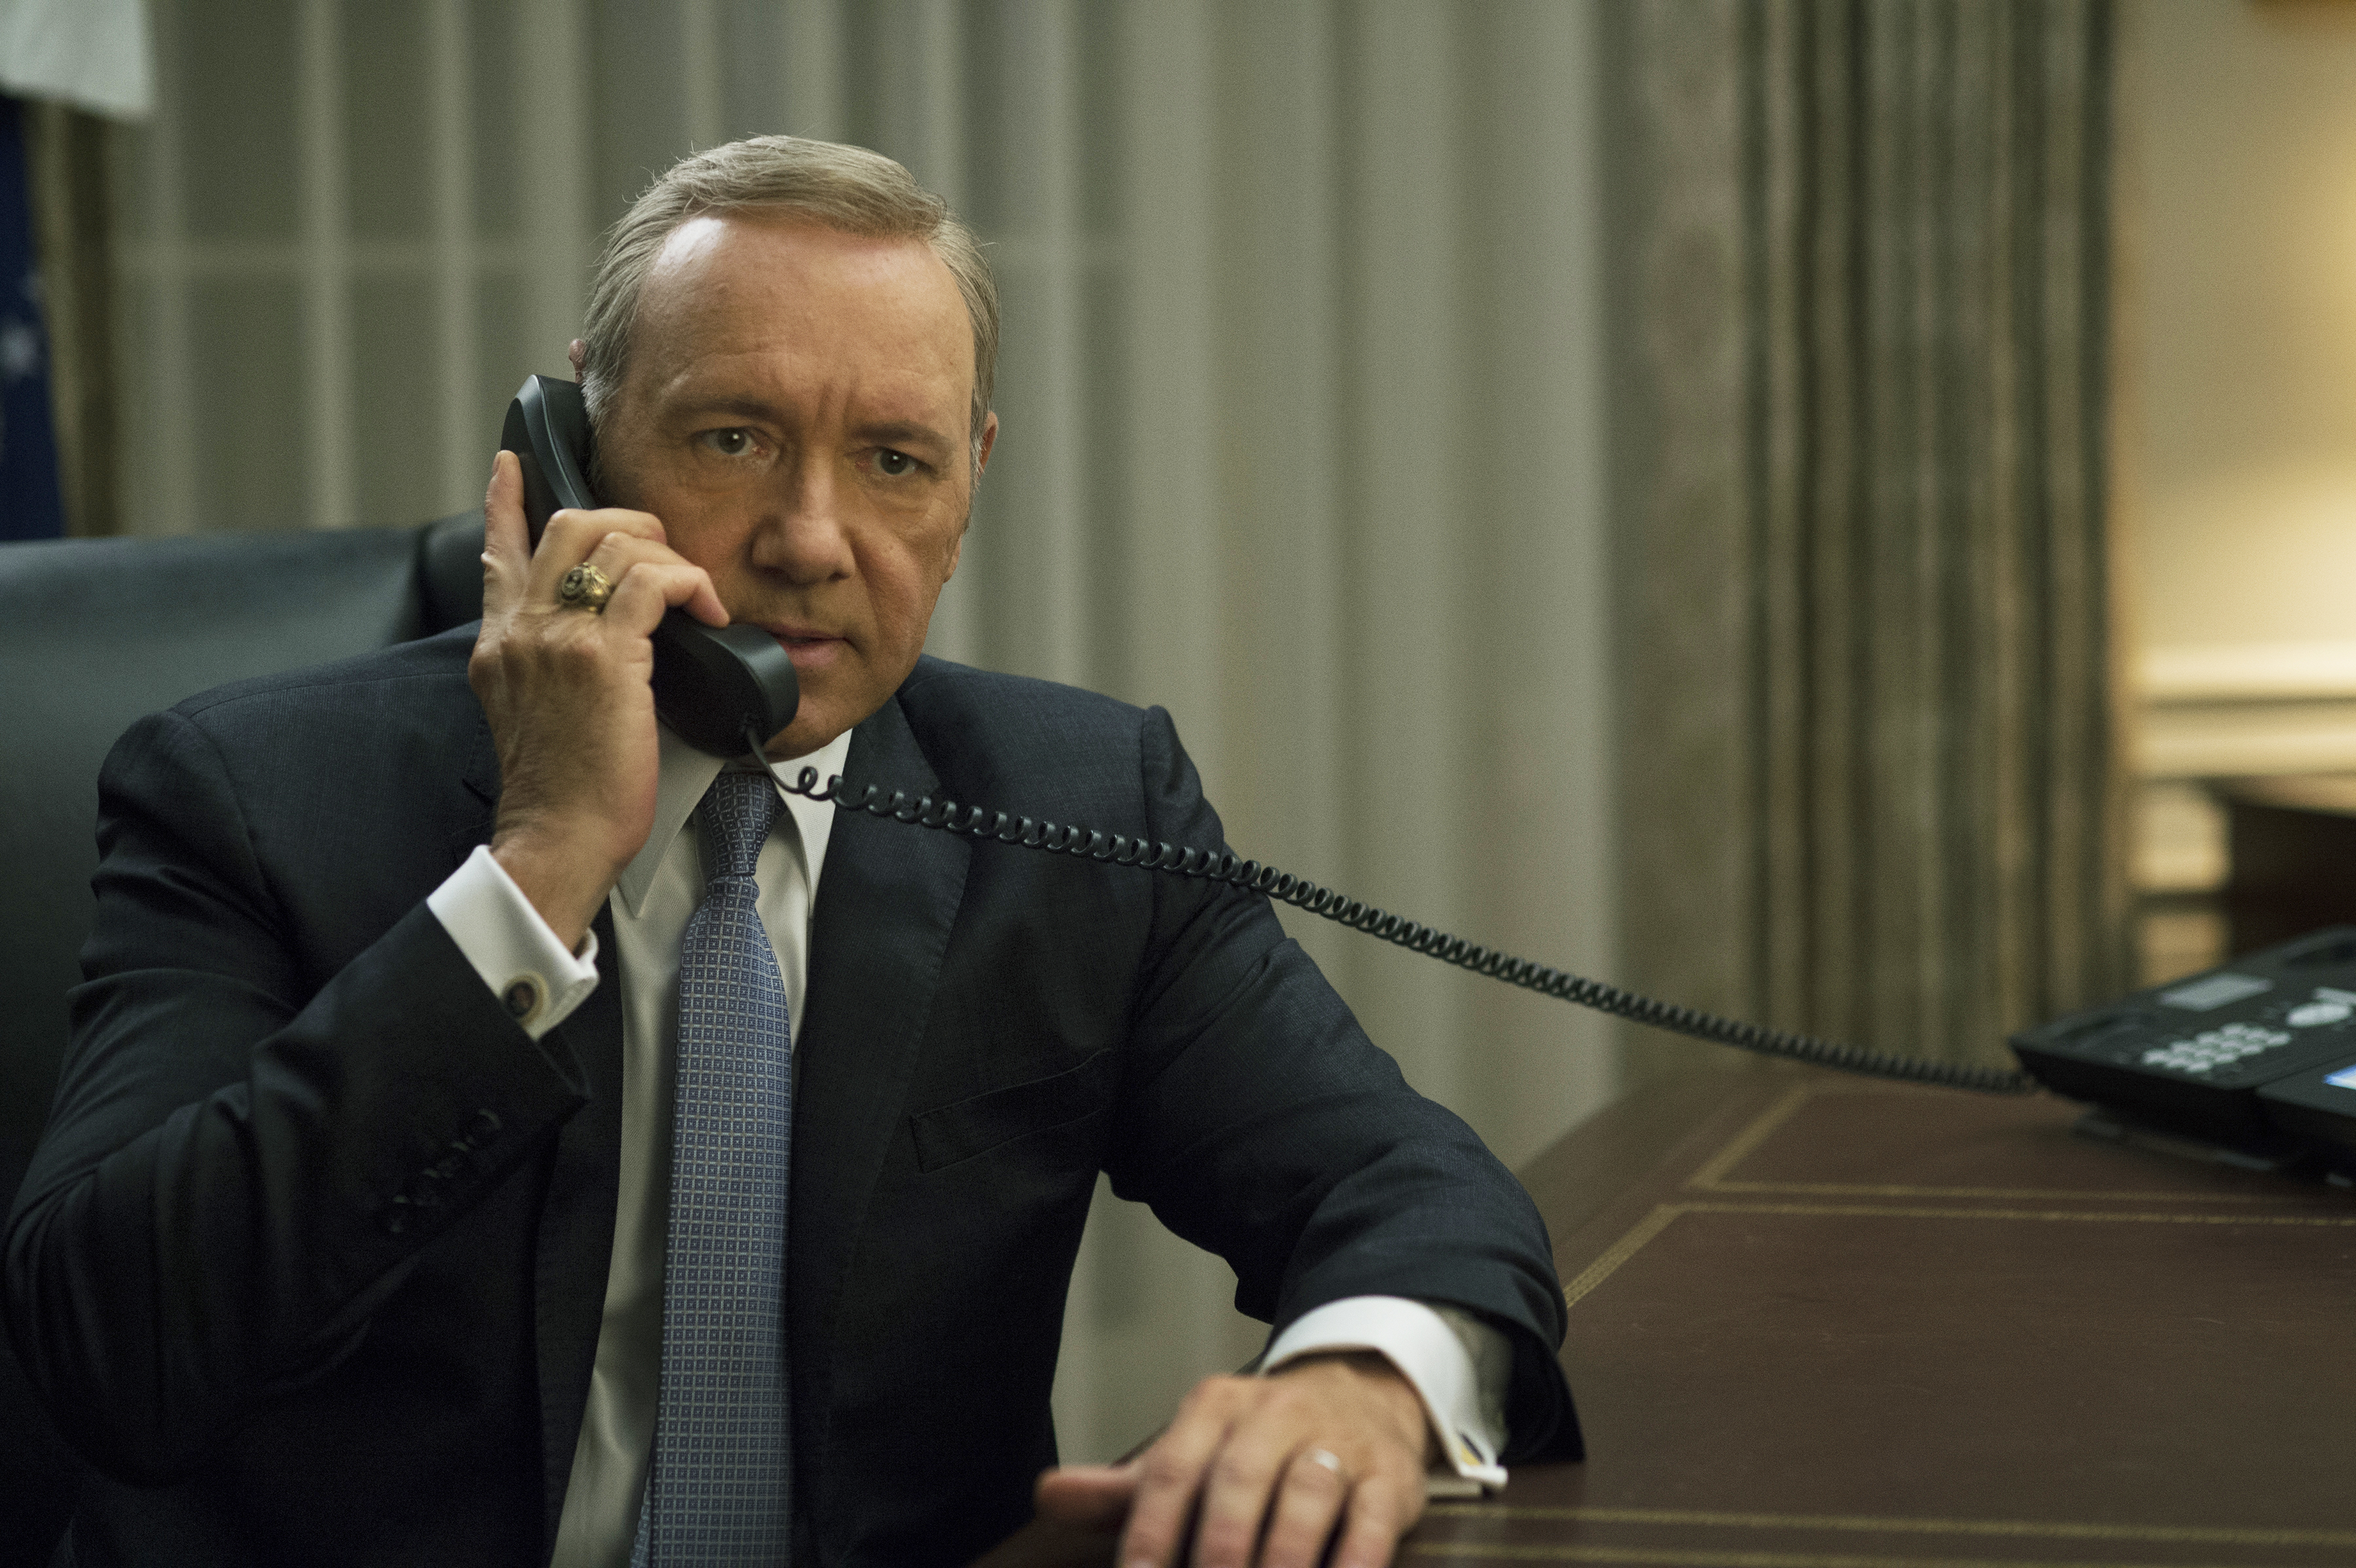 Kevin Spacey as Frank Underwood in House of Cards, 2014.